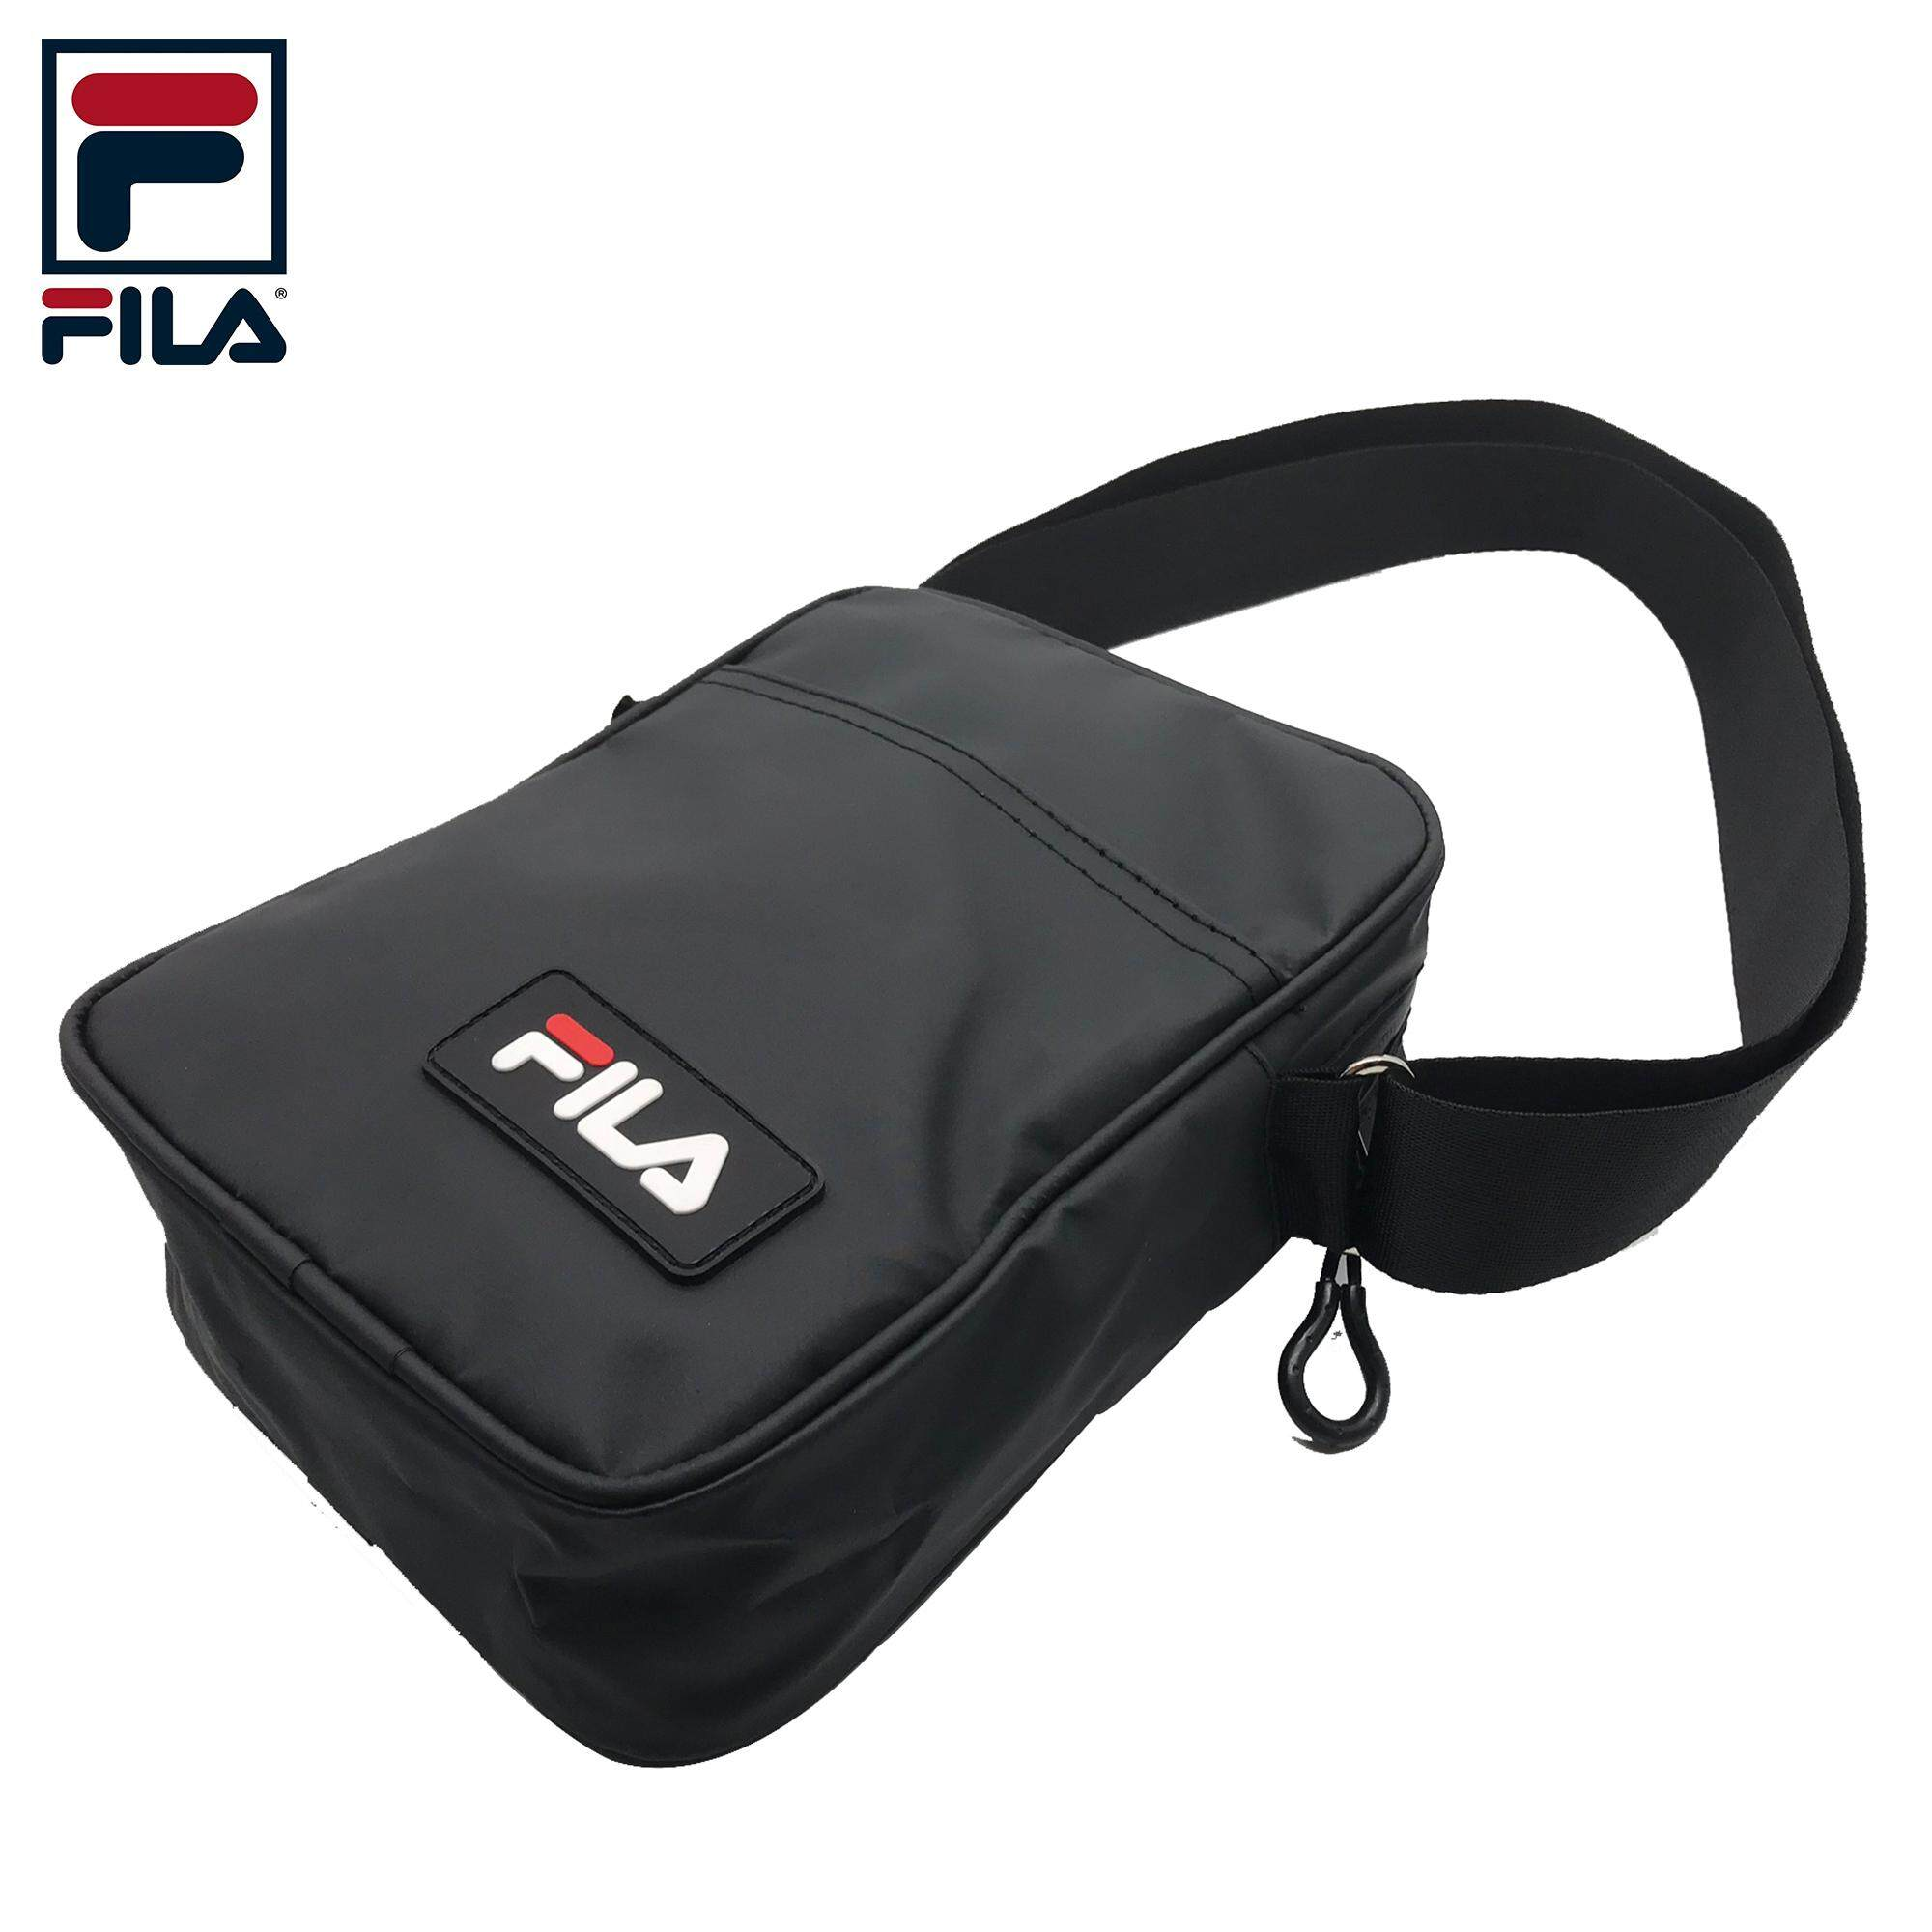 Men Bags 3 - Buy Men Bags 3 at Best Price in Malaysia   www.lazada ... 32ae9a725a